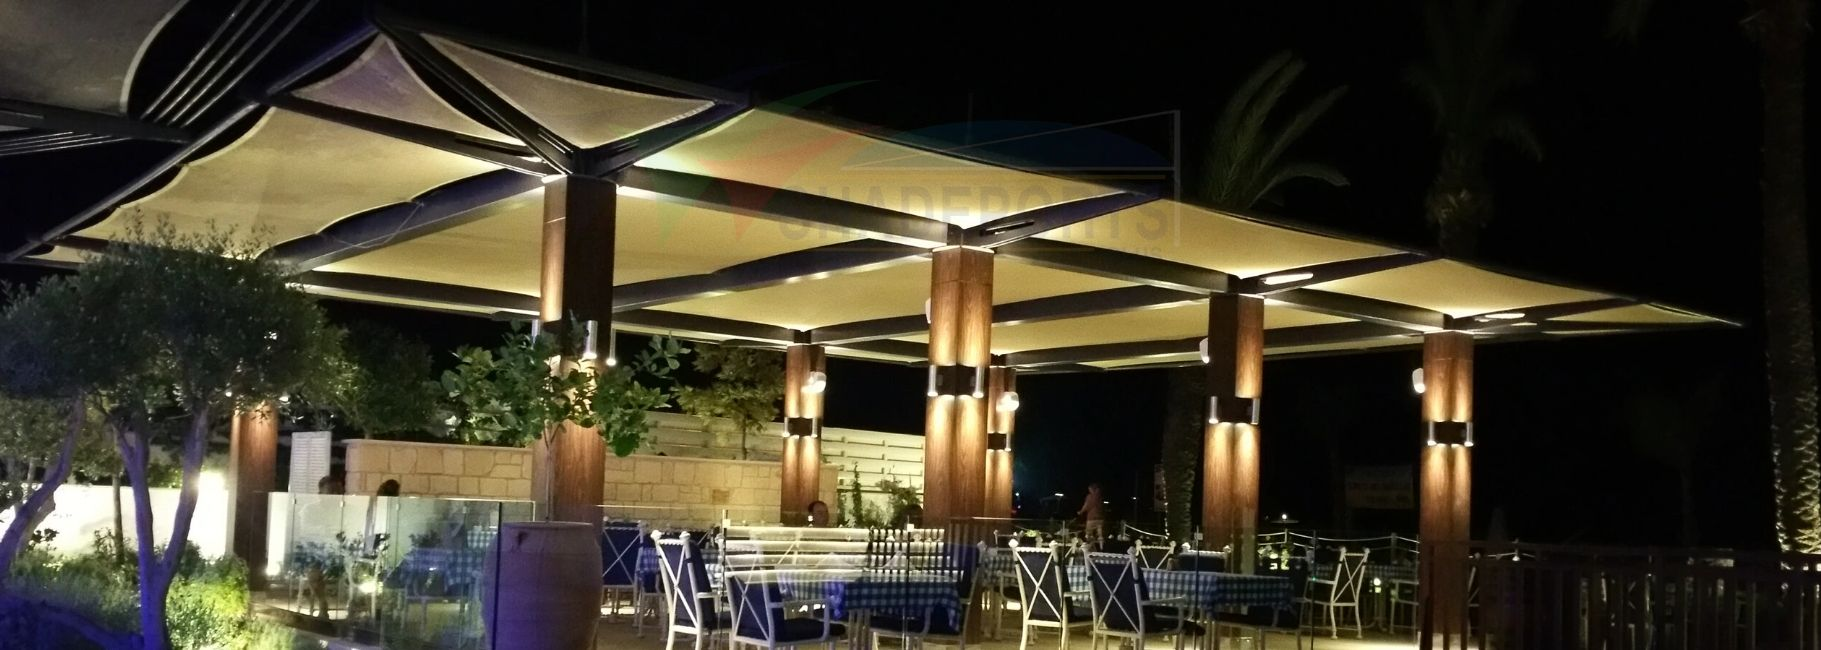 Shade structure at night with integrated outdoor lighting, by Shadeports Plus Ltd, Cyprus.